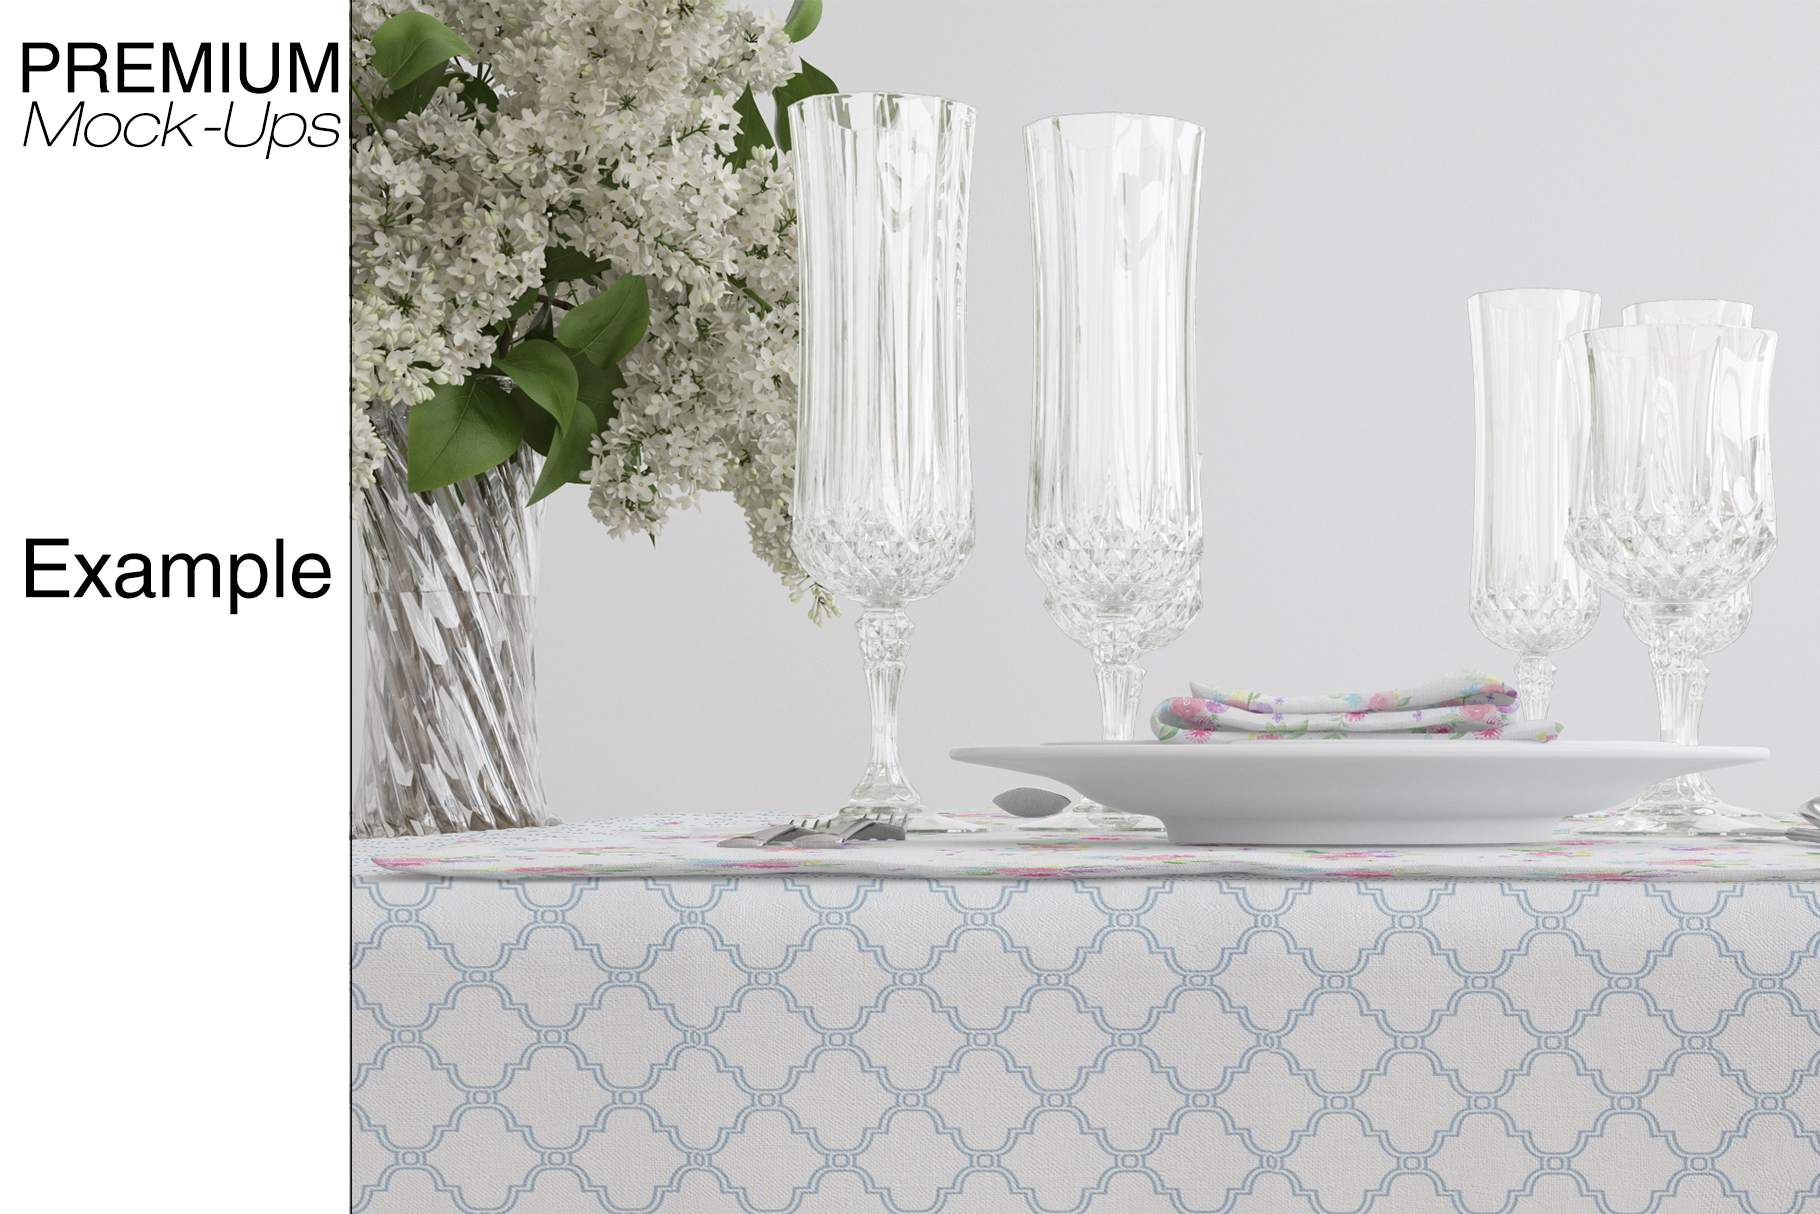 Tablecloth, Runner, Napkins & Plates example image 16